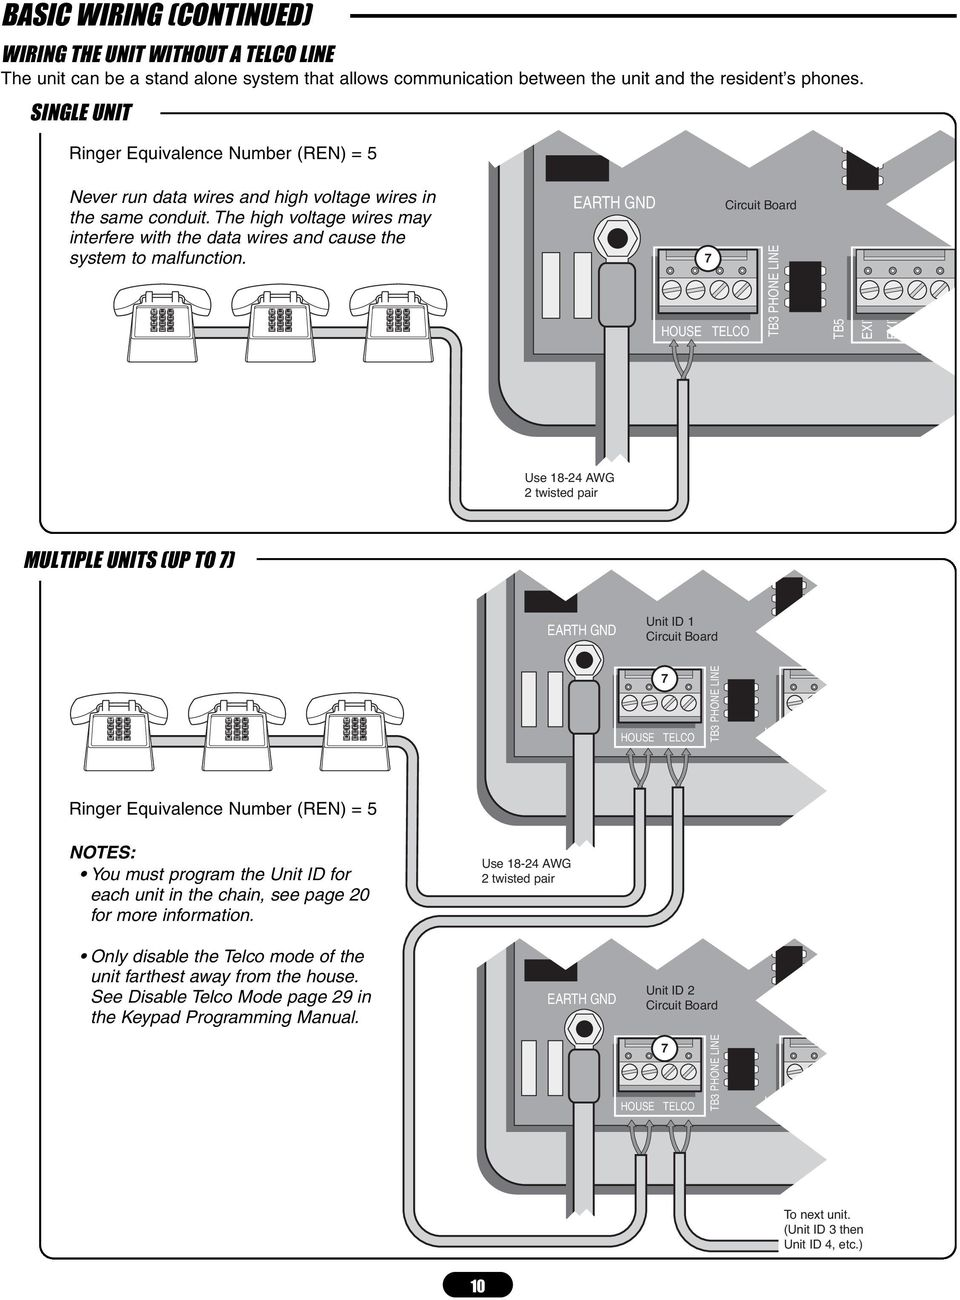 The high voltage wires may interfere with the data wires and cause the  system to malfunction